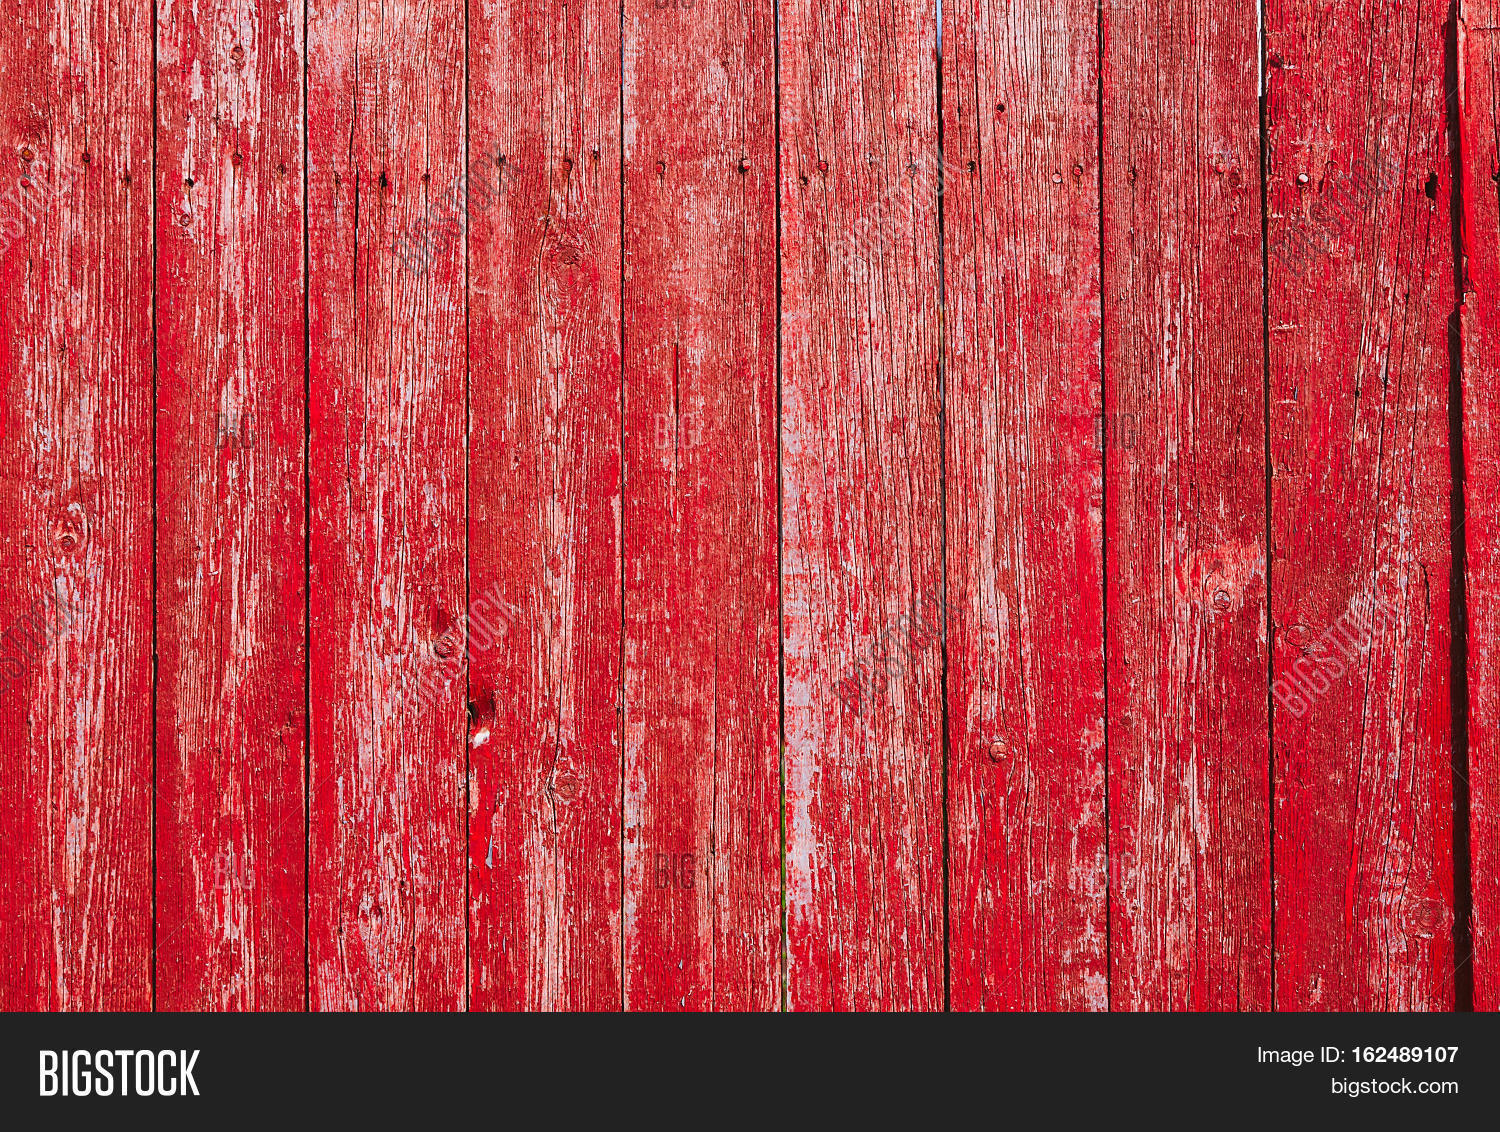 Red Wooden Vintage Style Texture Natural Rustic Old Wood Board Wall Shabby Color Background